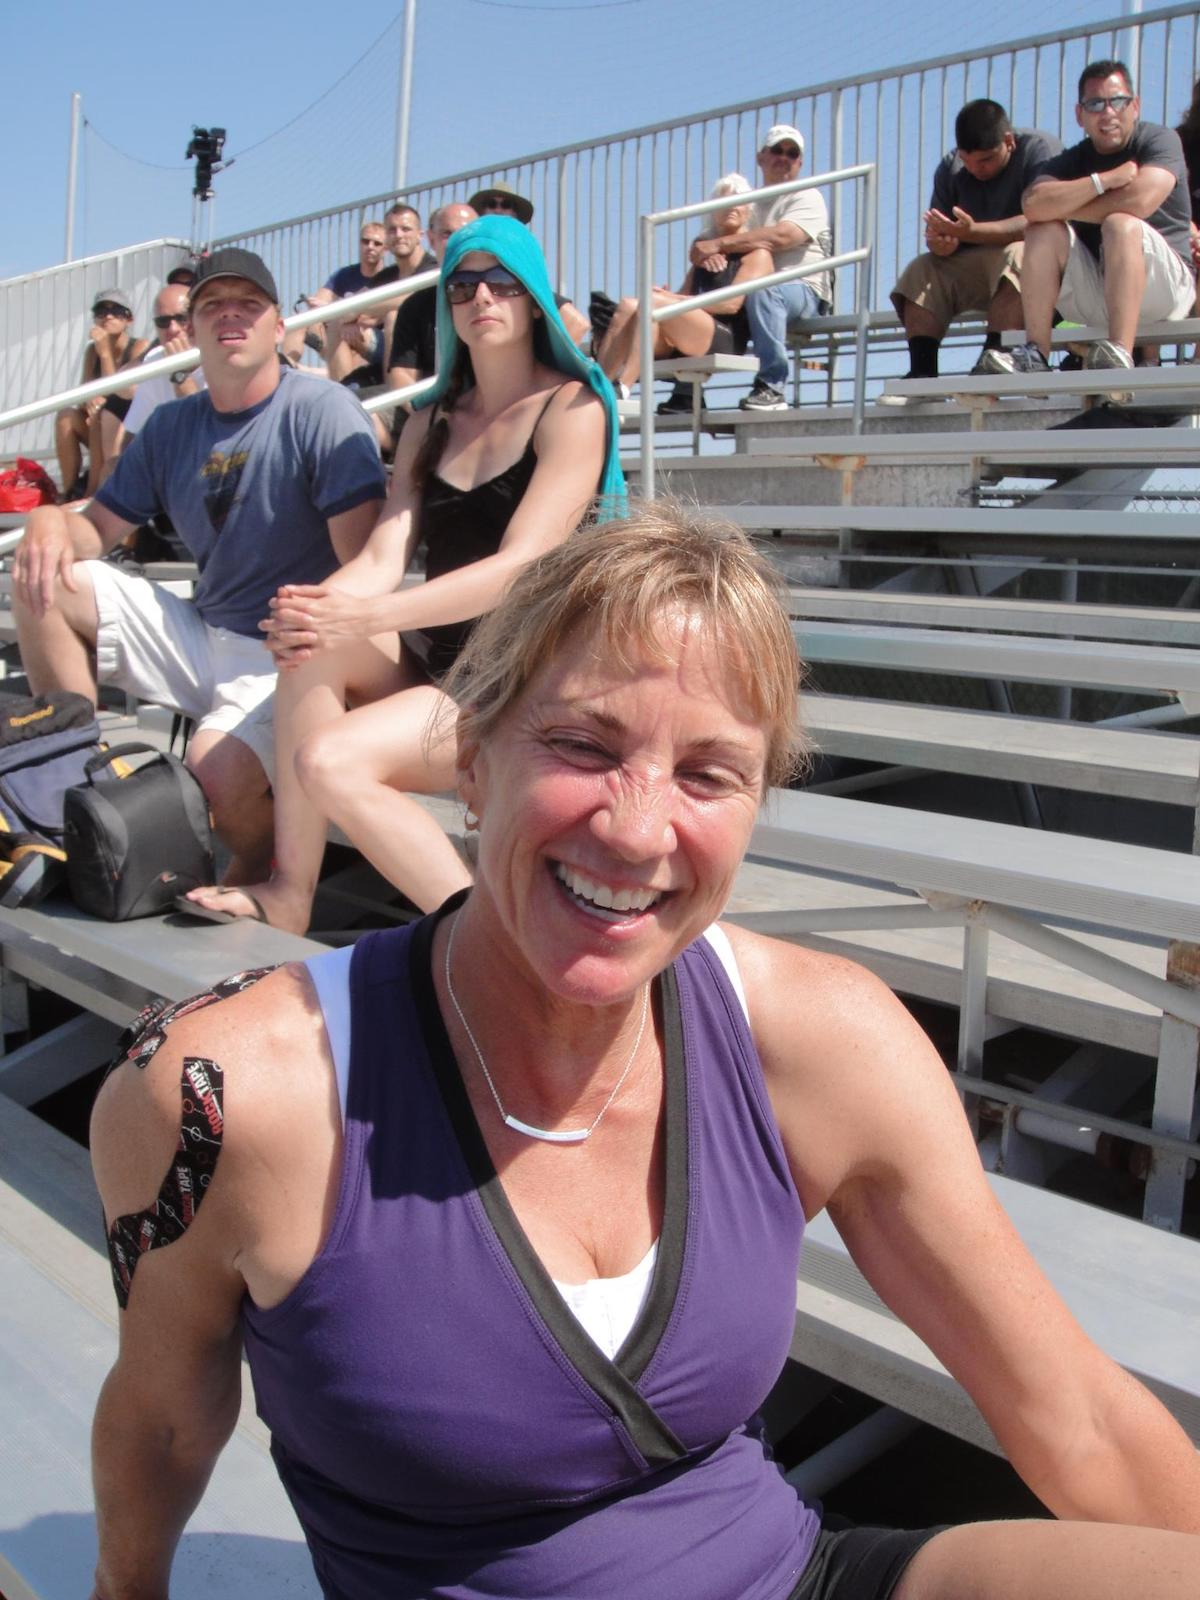 Kathy Miller at the 2011 CrossFit Games